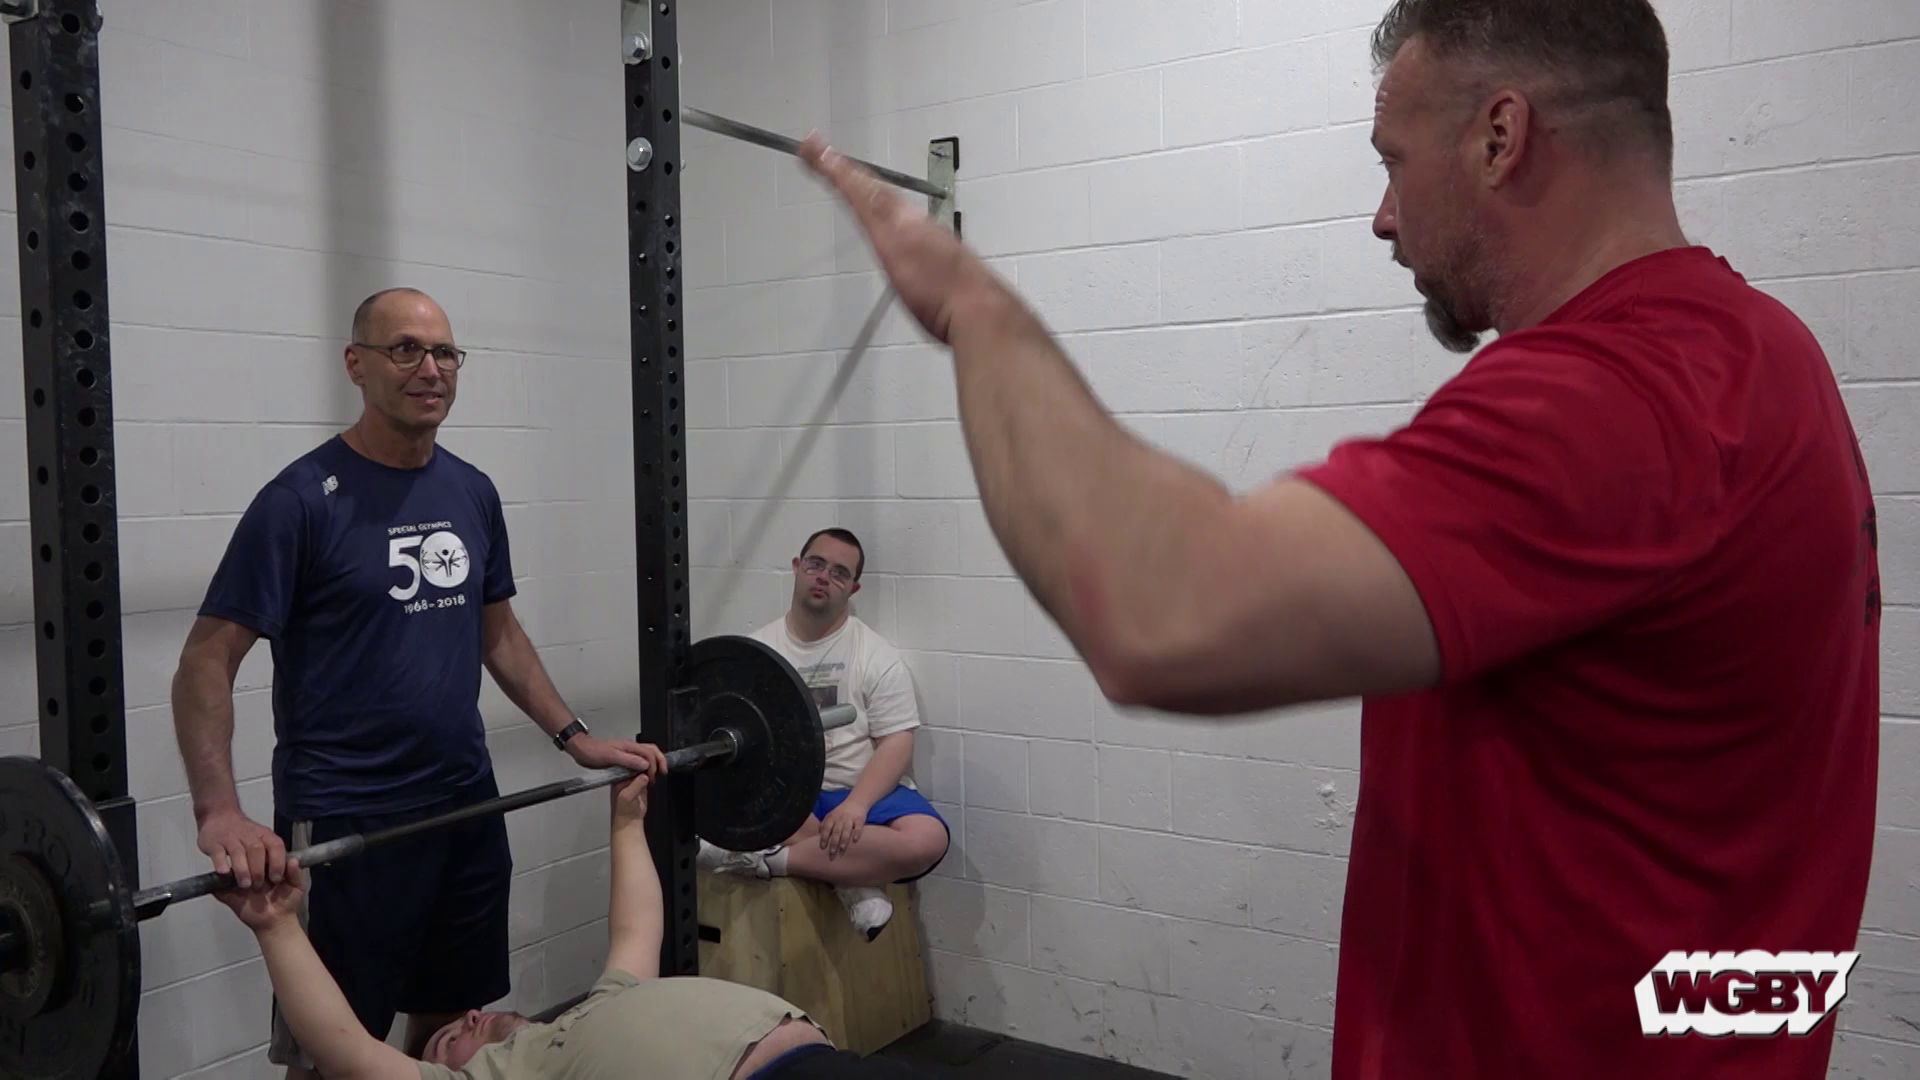 Visit East Longmeadow, MA's Power Clean Fitness, where the first ever western Mass Special Olympics Power Lifting team trains for the Massachusetts Special Olympics this June.